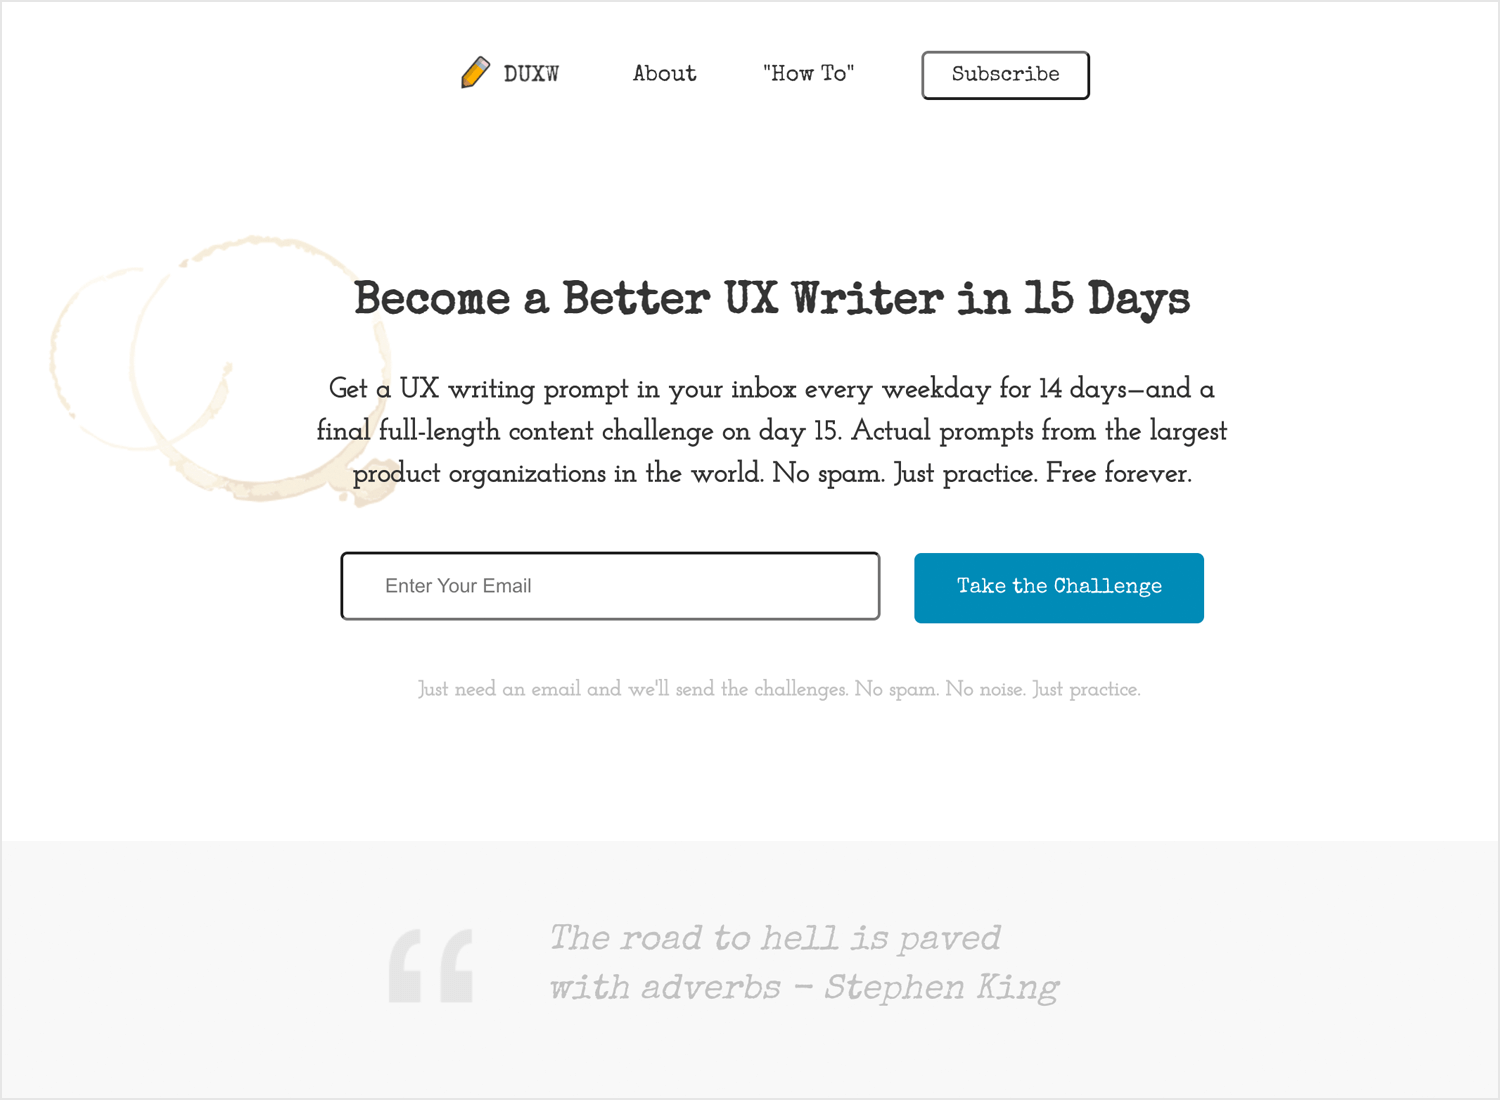 Daily UX Writing course